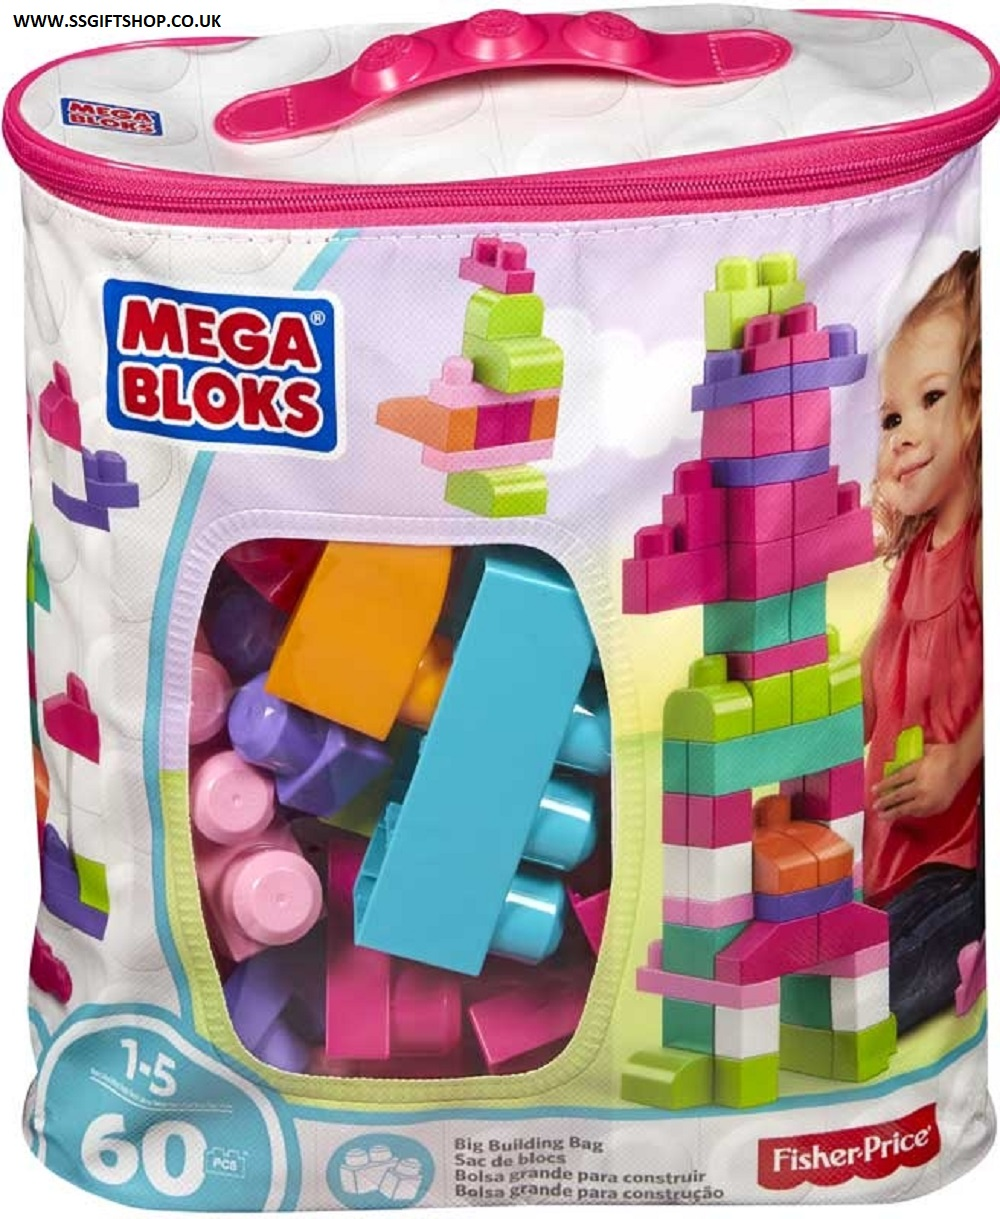 MEGS BLOCK SET 60 PC PINK